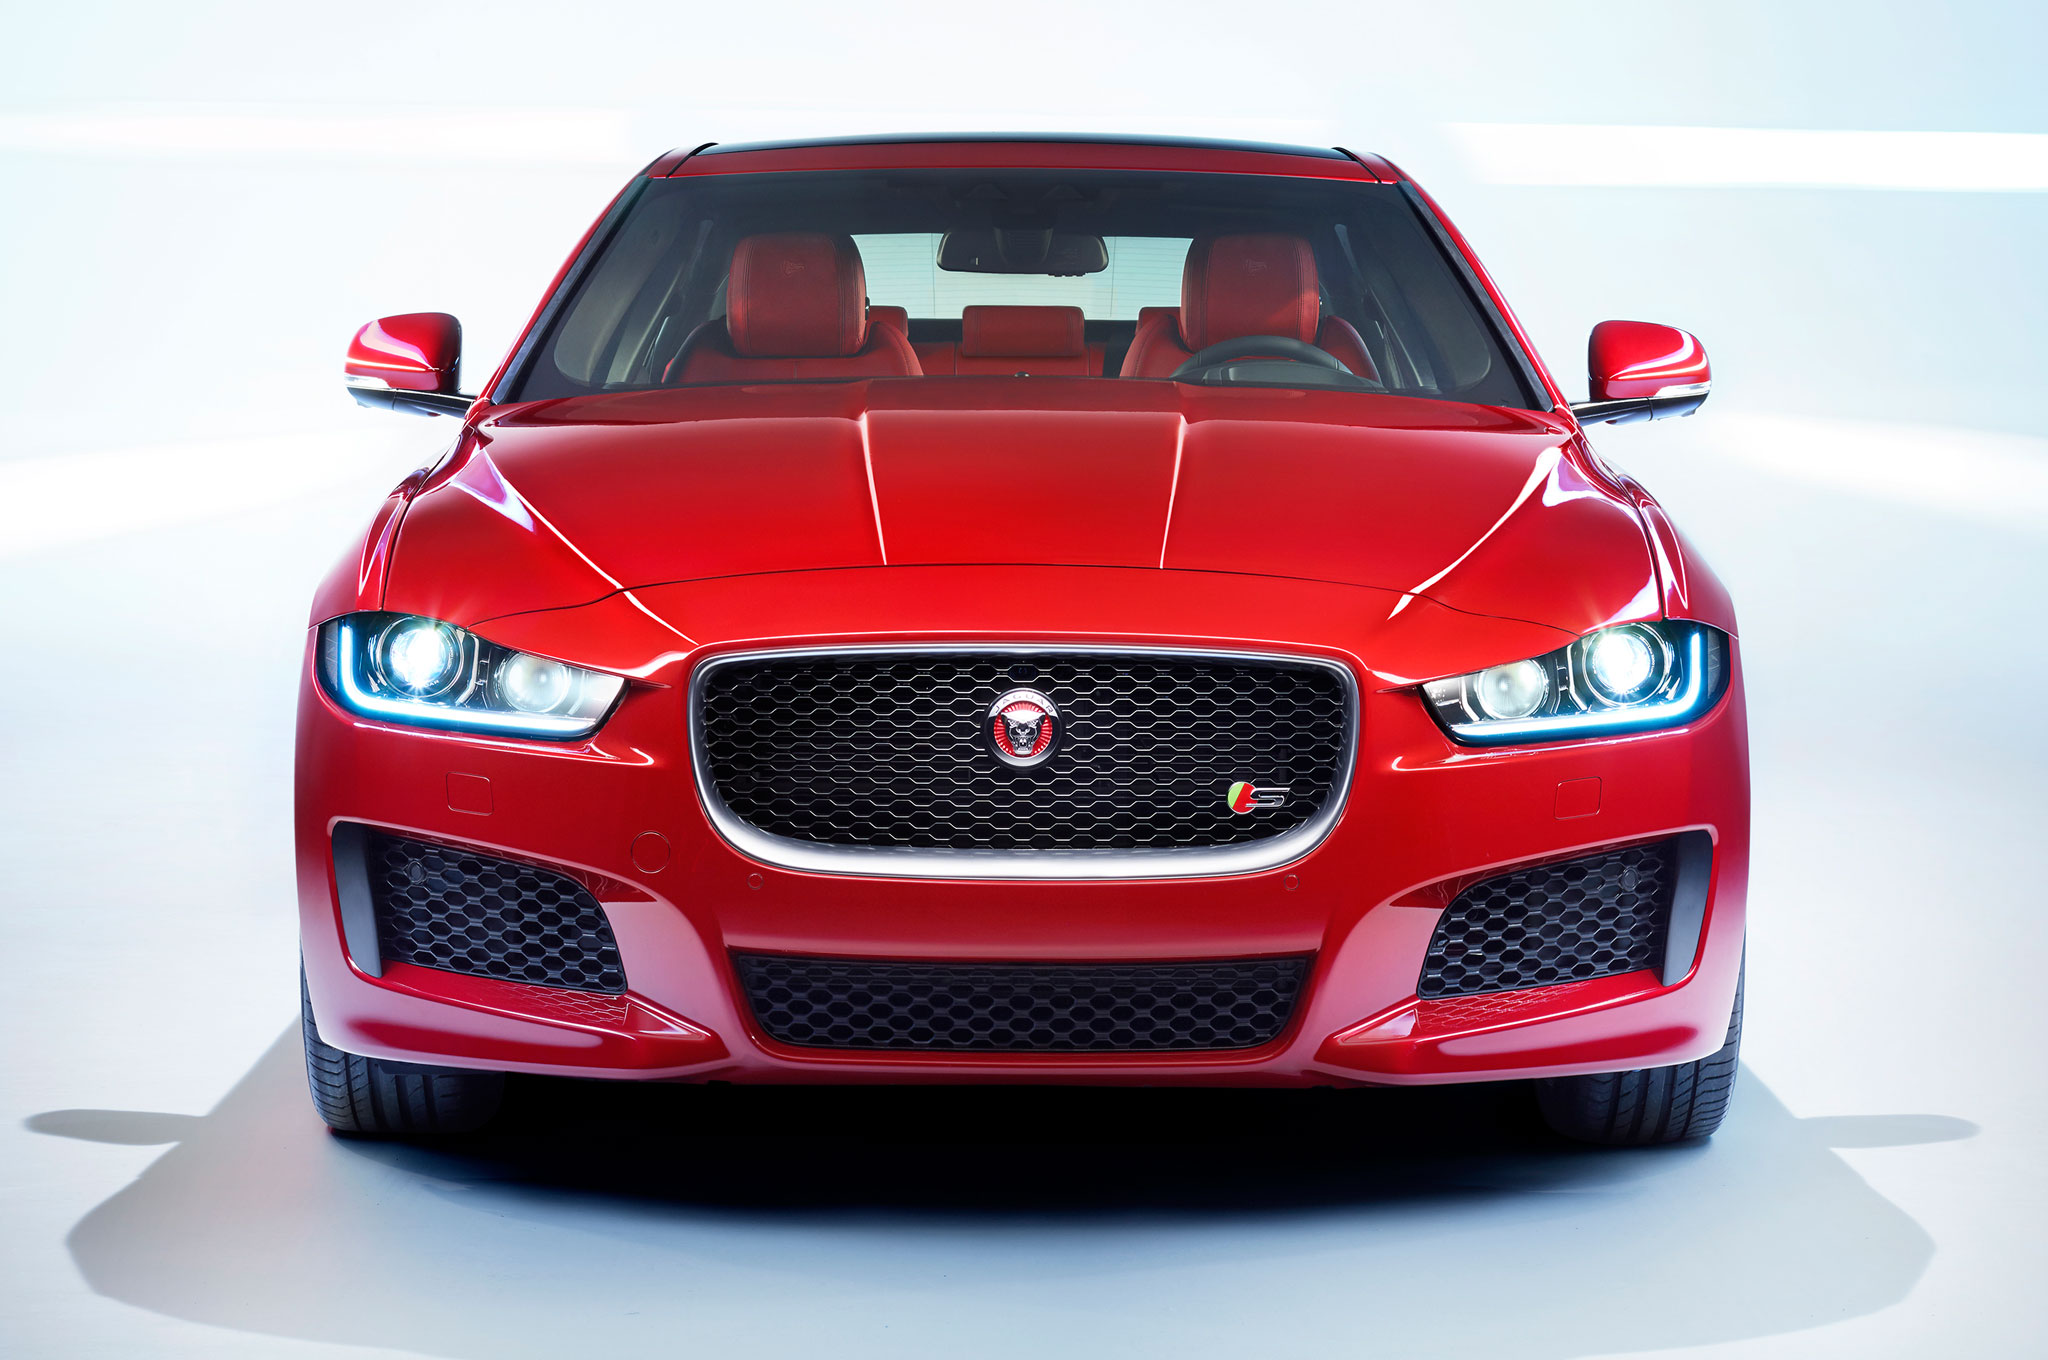 2016 Jaguar Xe Facelift Front Photo (Photo 3 of 12)